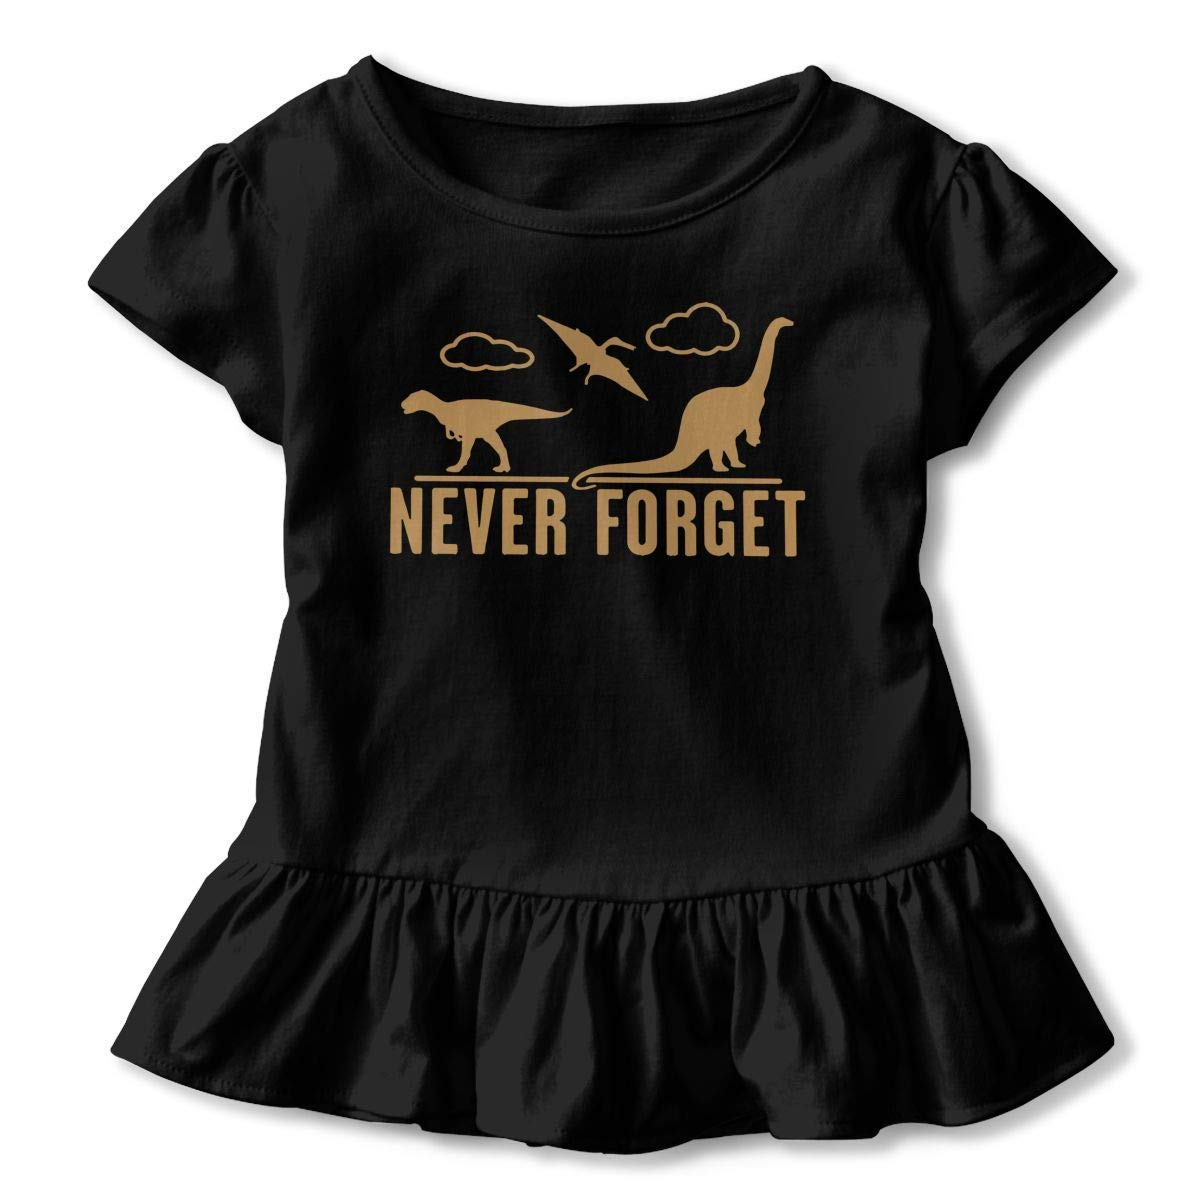 j65rwjtrhtr Girls Camicie Sleeve Never Forget Dinosaurs T-Shirts 2-6T Ruffled Blouse Clothes with Flounces